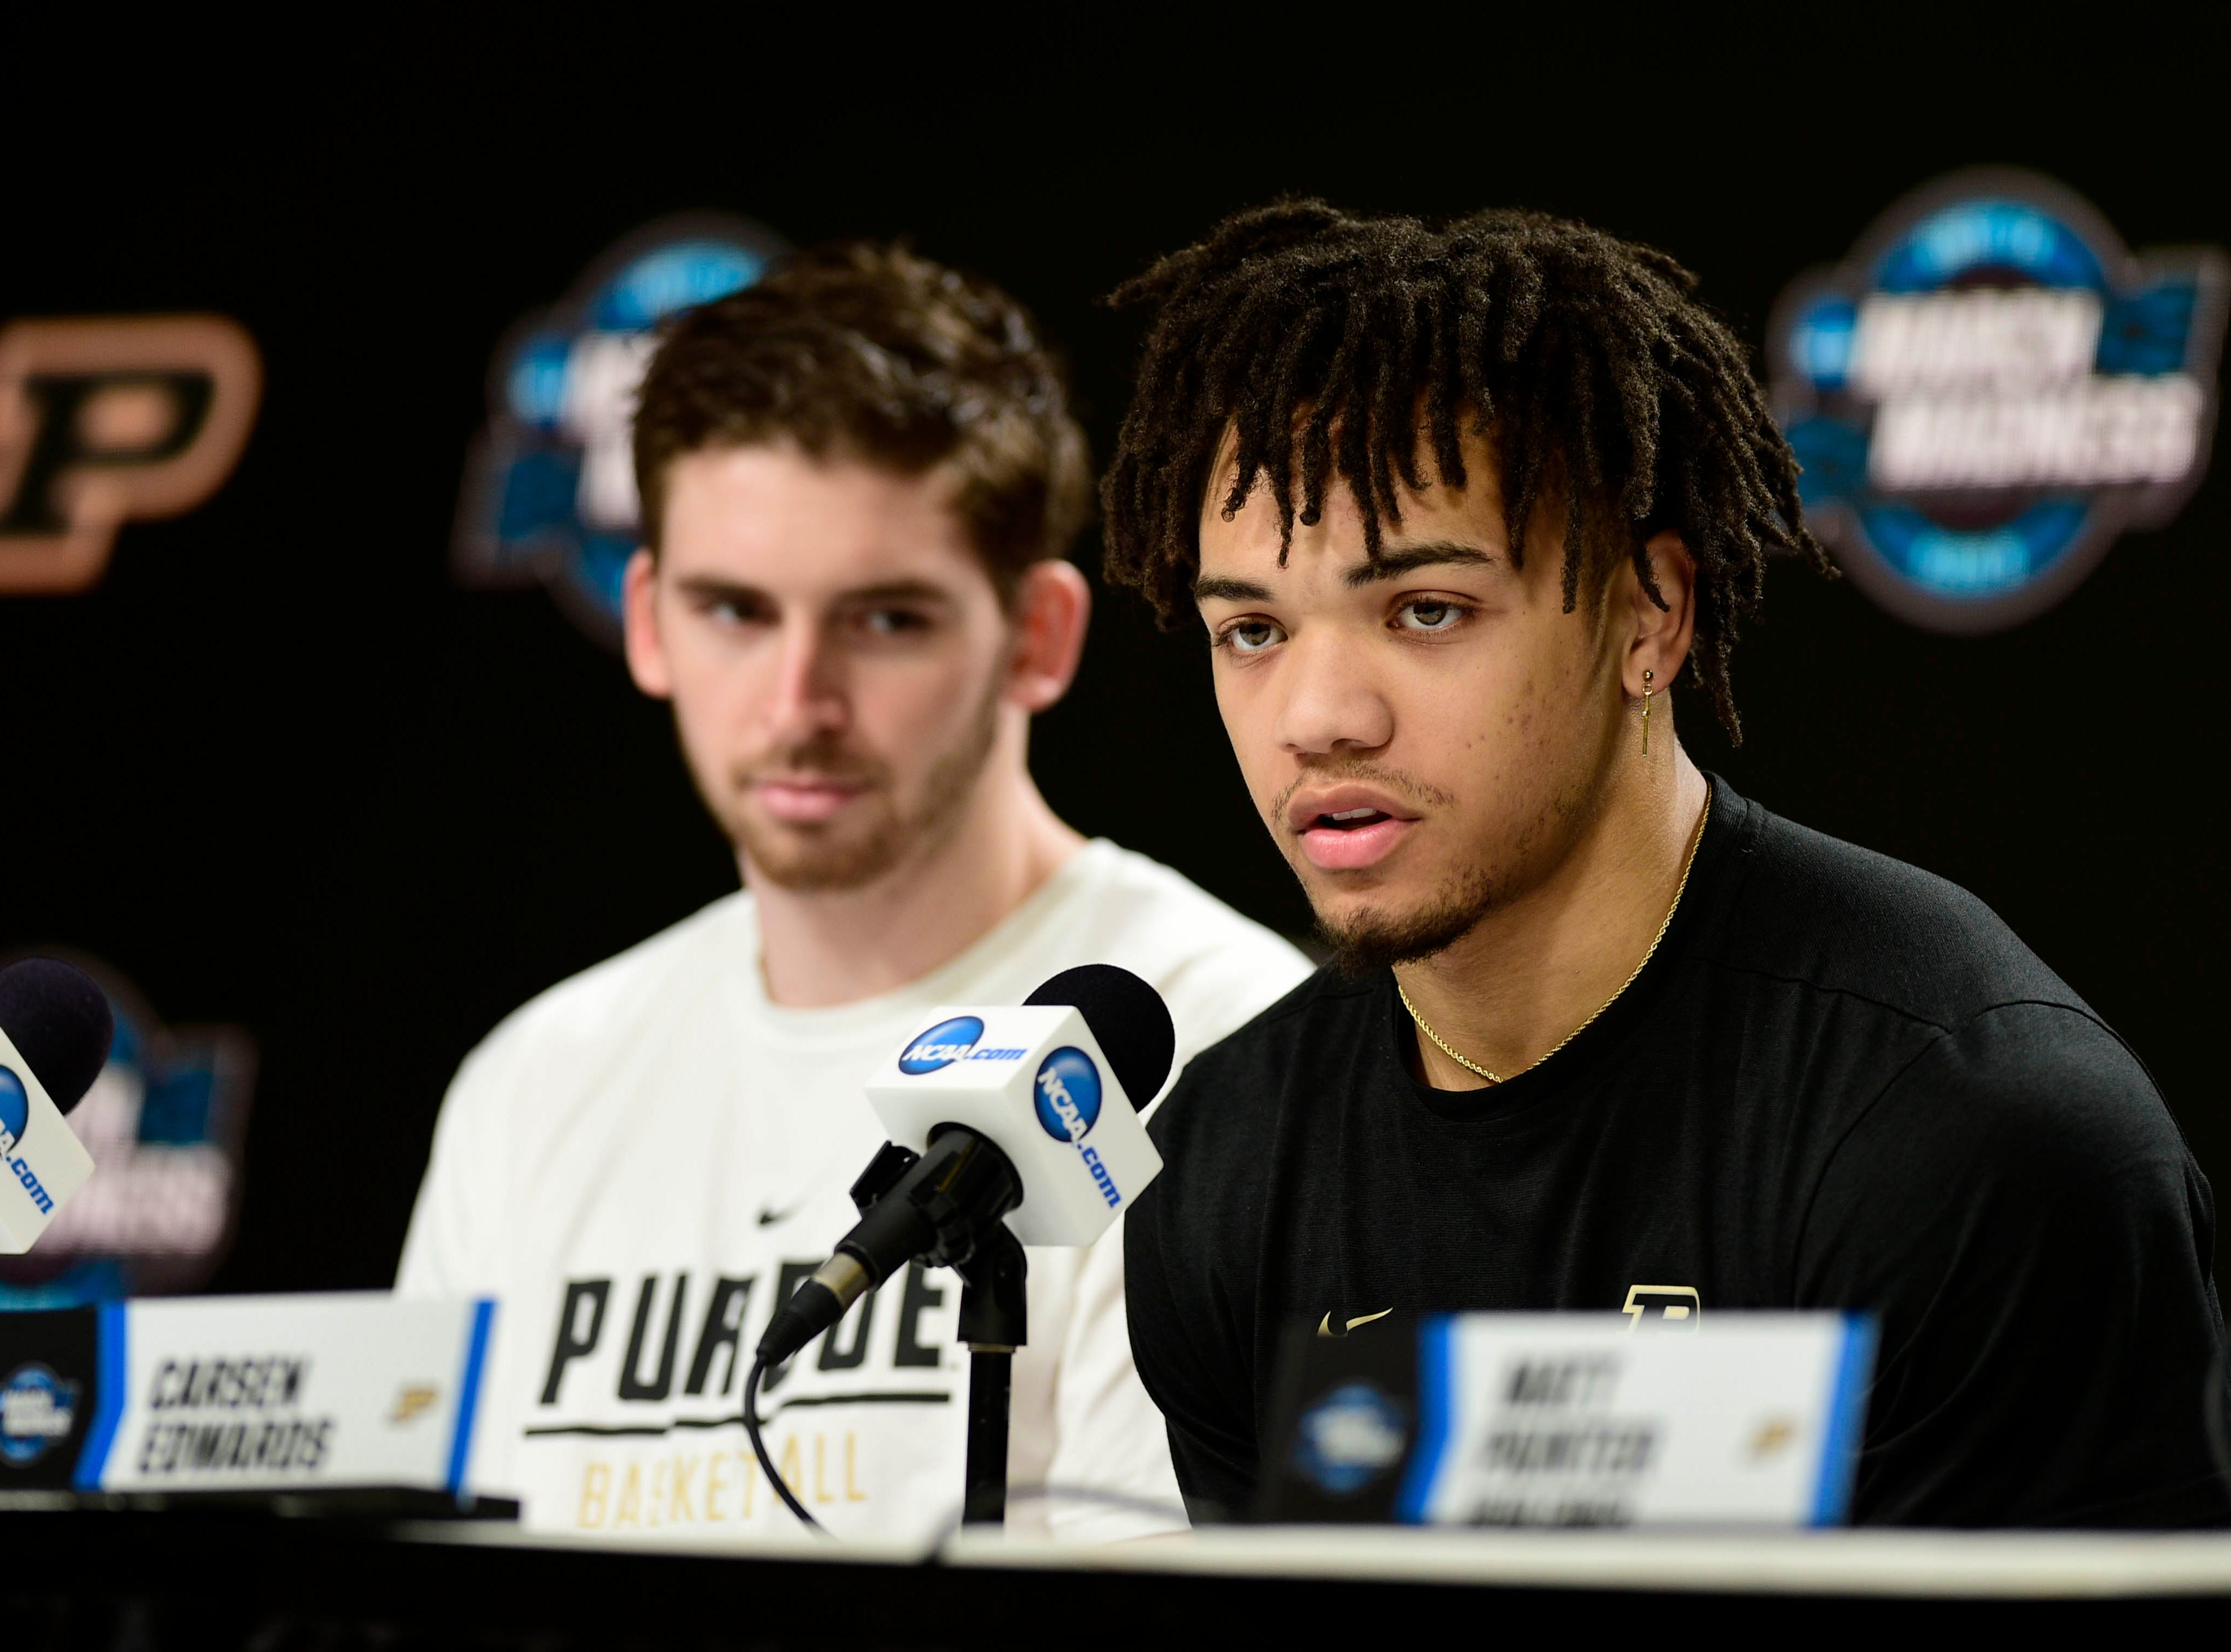 Mar 27, 2019; Louisville, KY, United States; Purdue Boilermakers guard Carsen Edwards (3) speaks during a press conference for the south regional of the 2019 NCAA Tournament at KFC Yum Center. Mandatory Credit: Thomas J. Russo-USA TODAY Sports